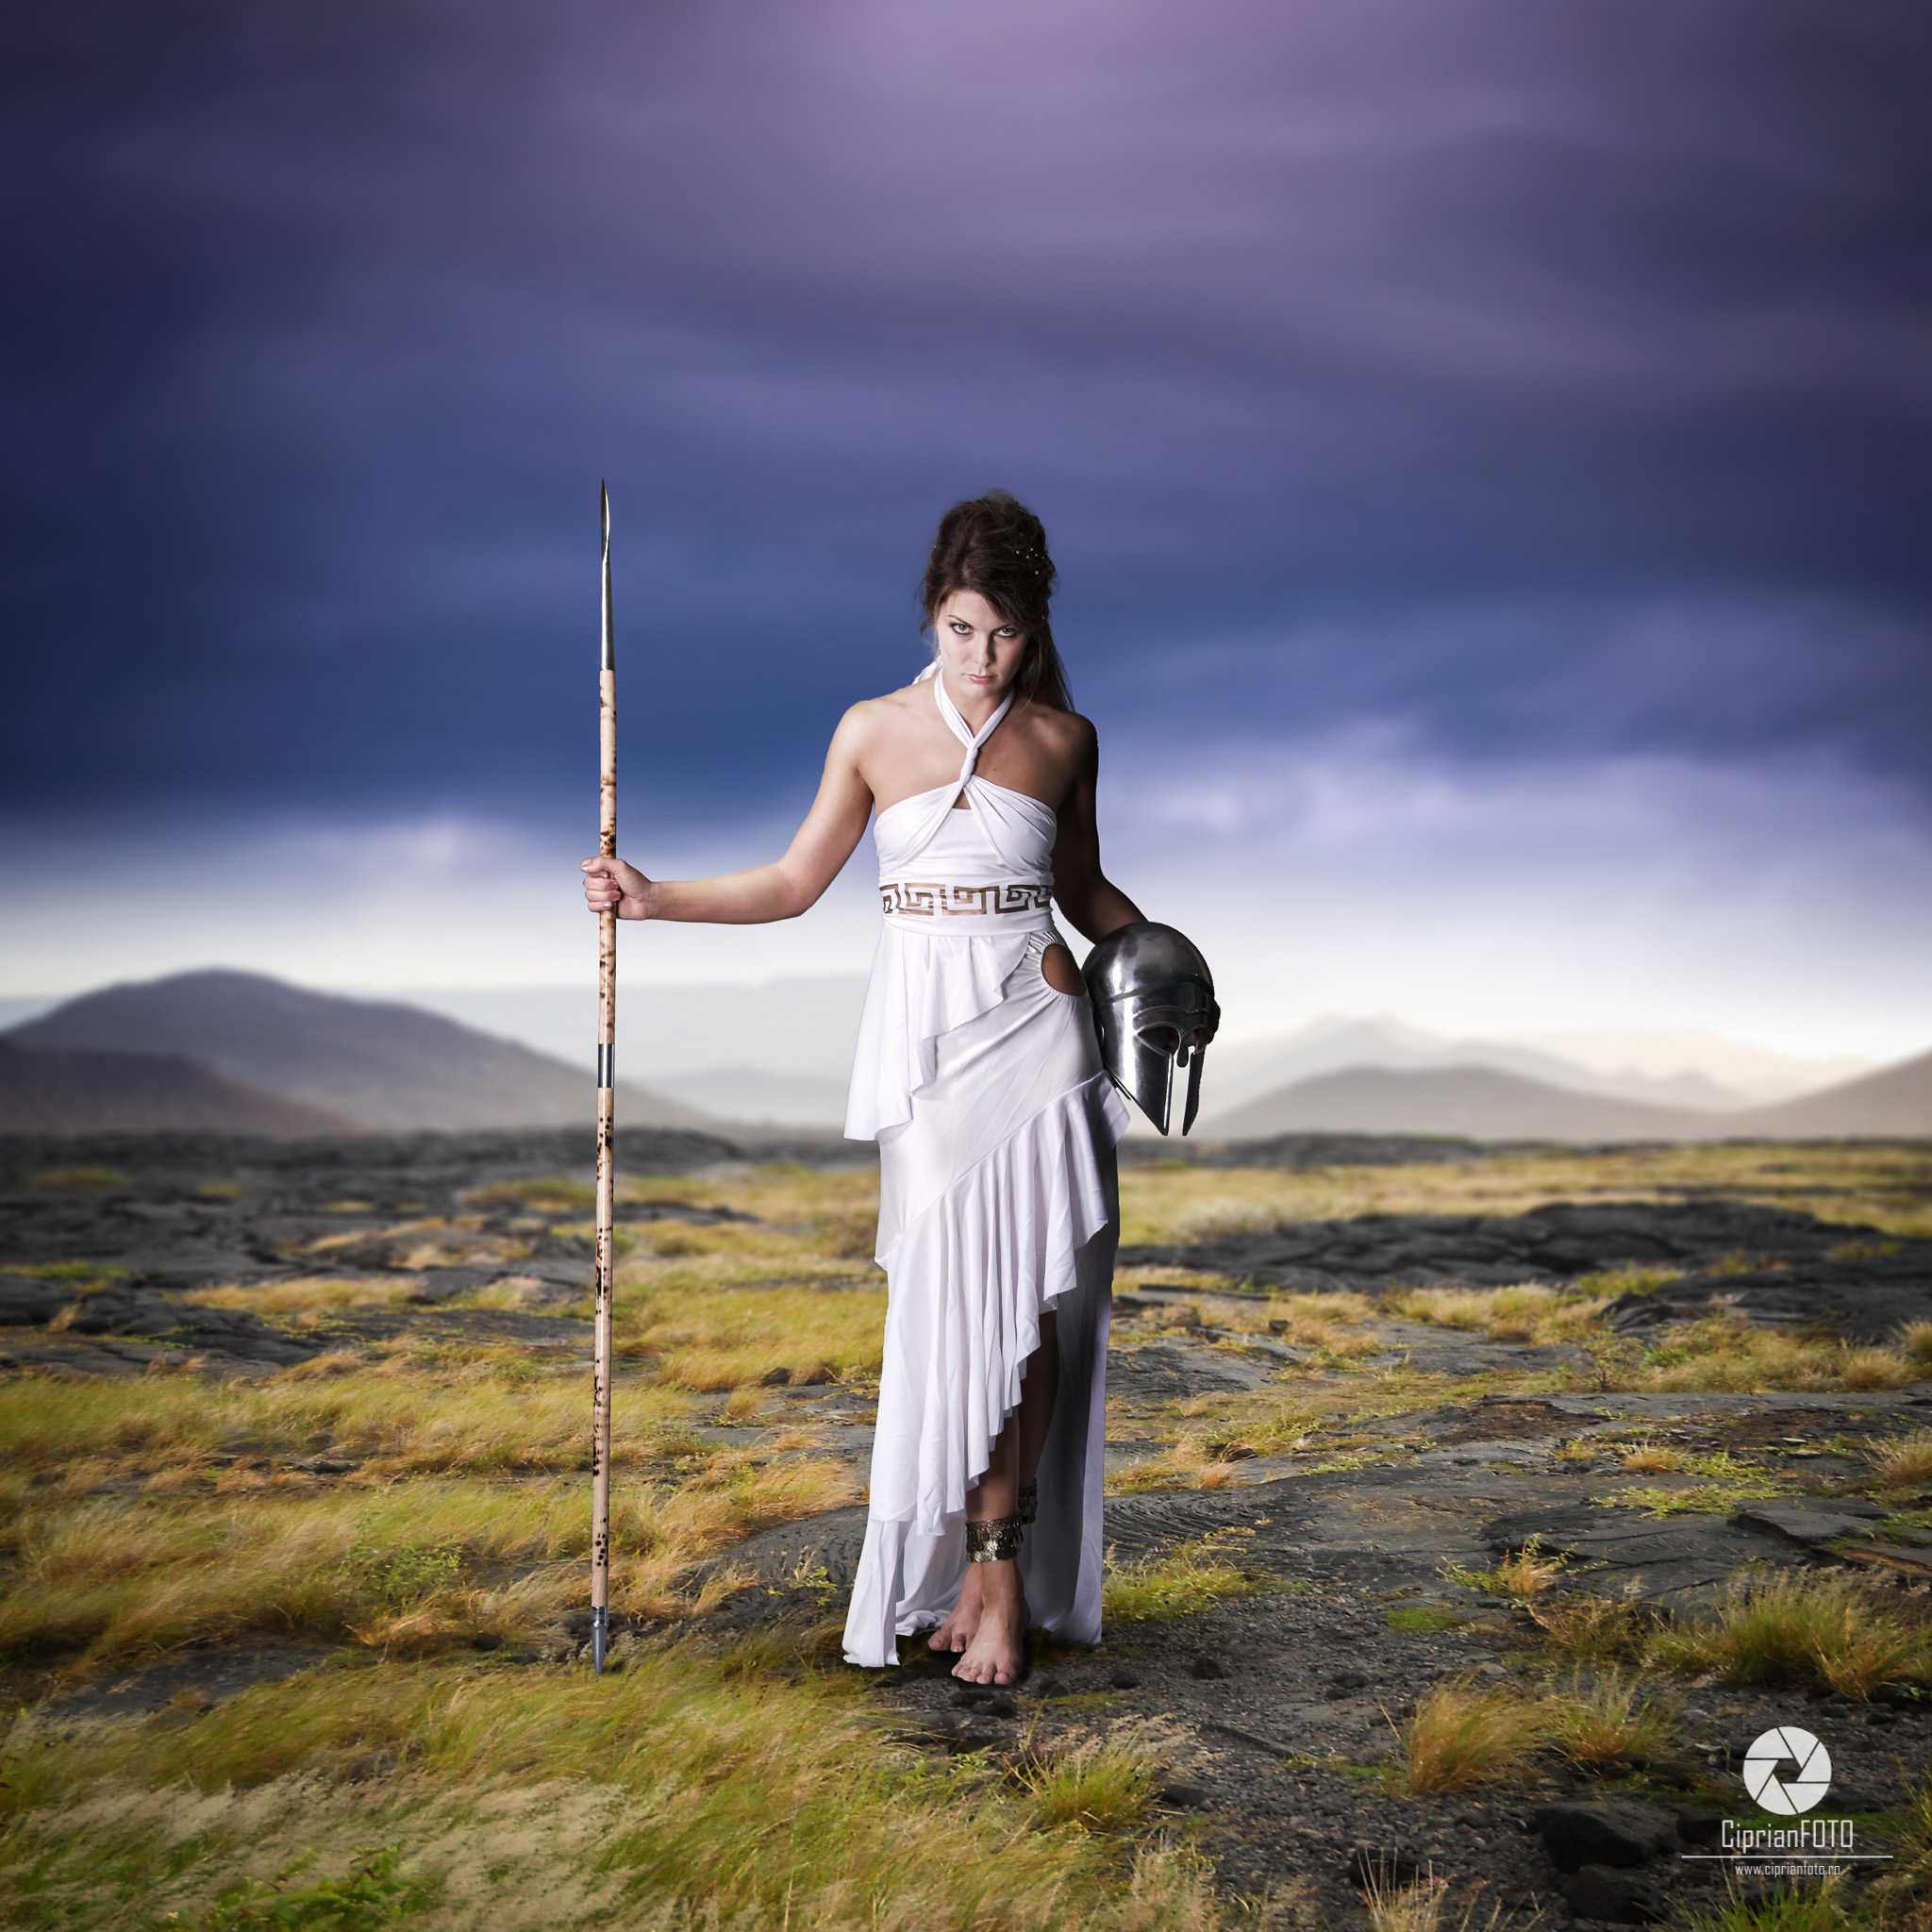 Greek_Goddess_Photoshop_Manipulation_Tutorial_CiprianFOTO